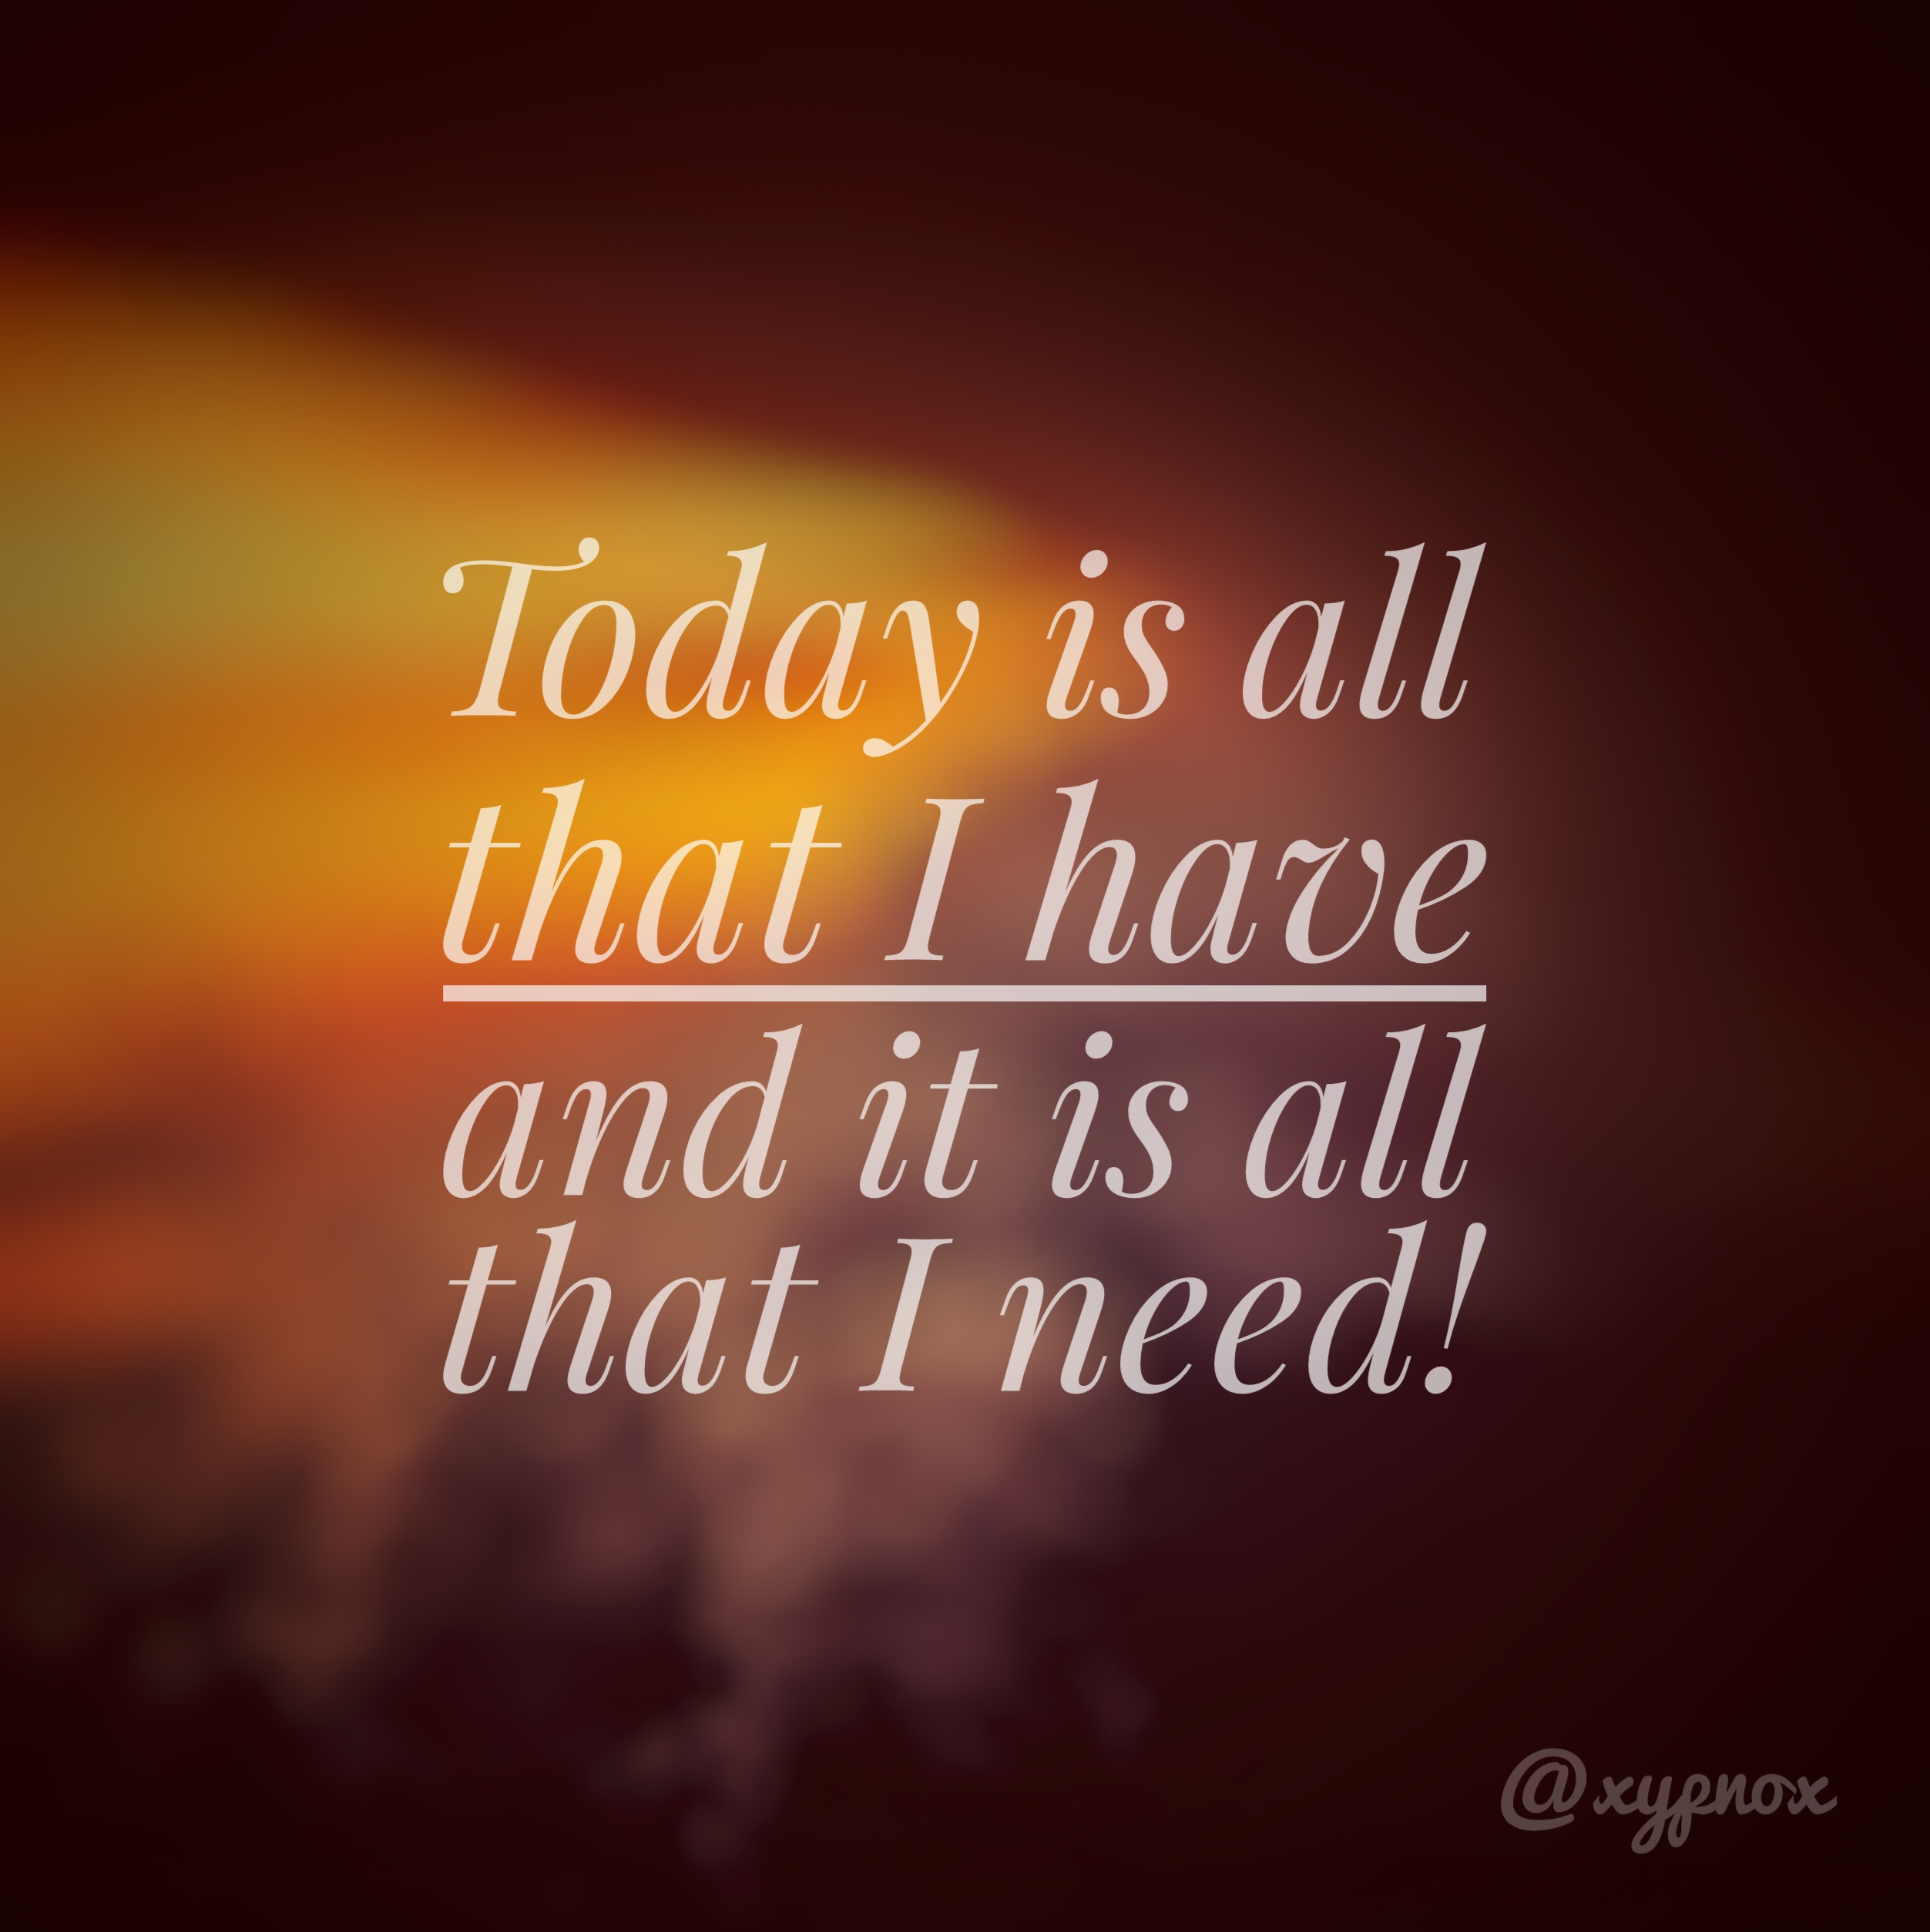 Today is all that I have, and that is all that I need!